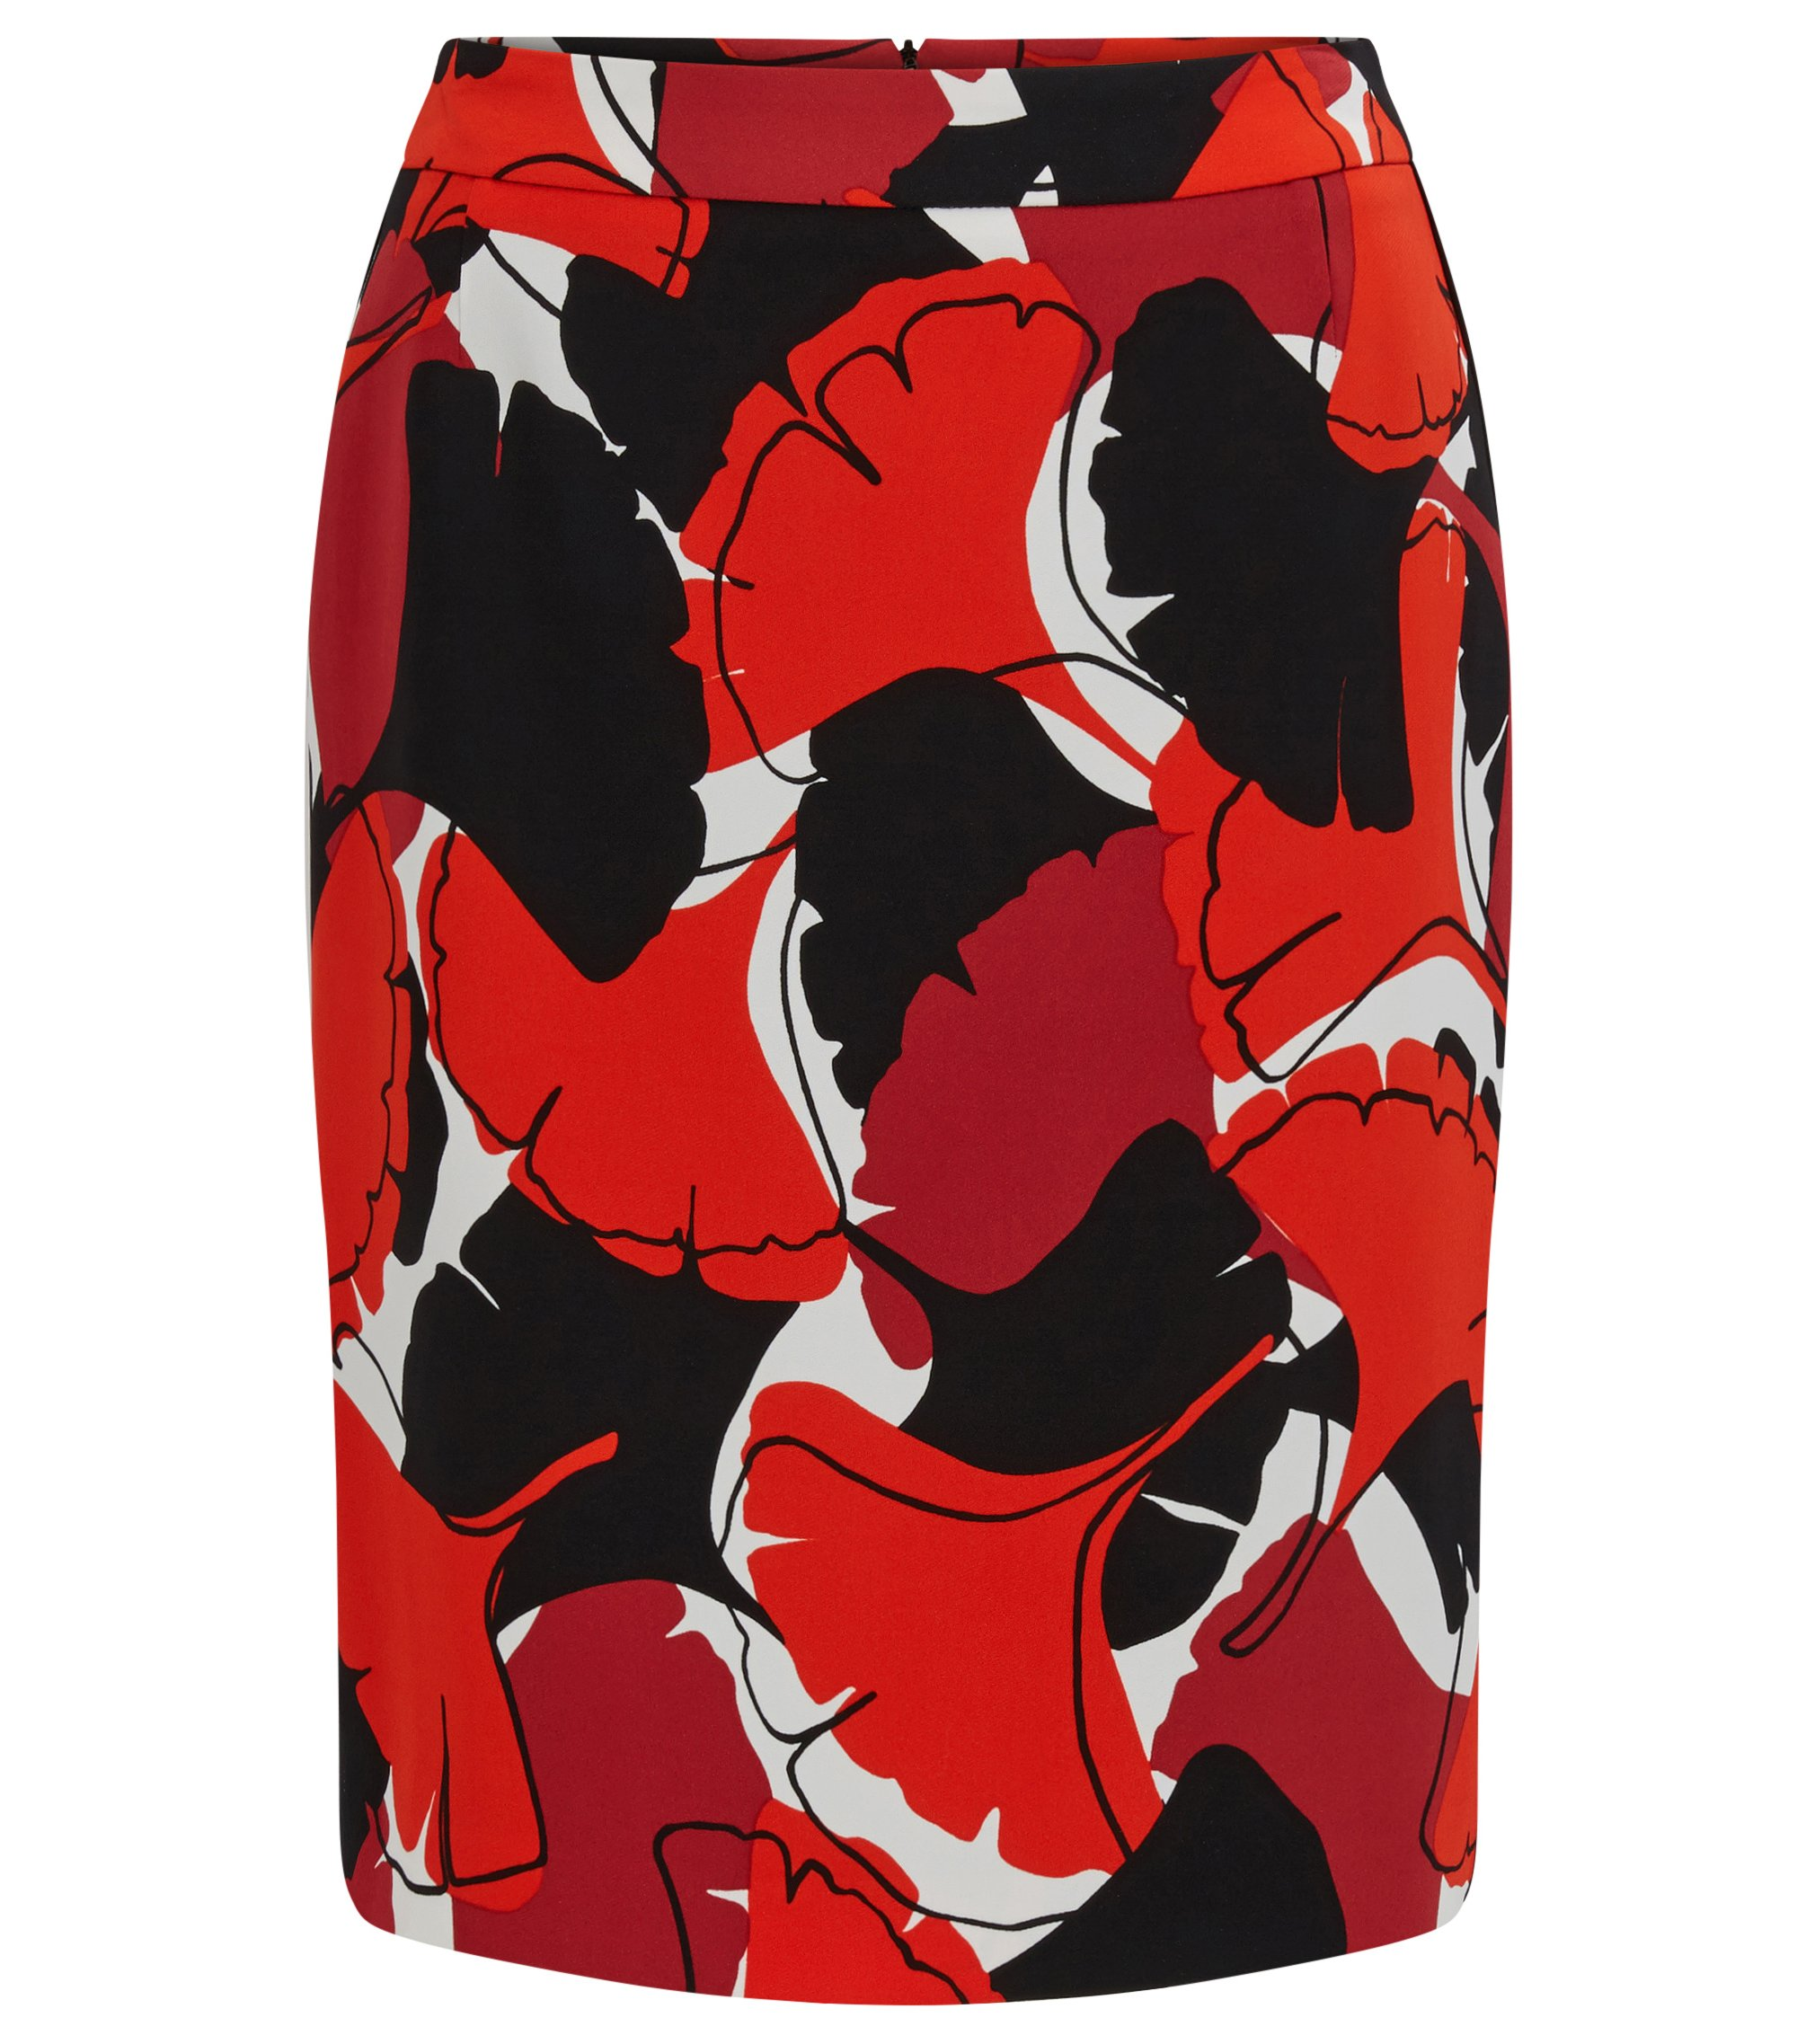 Pencil skirt in printed stretch crêpe, Patterned